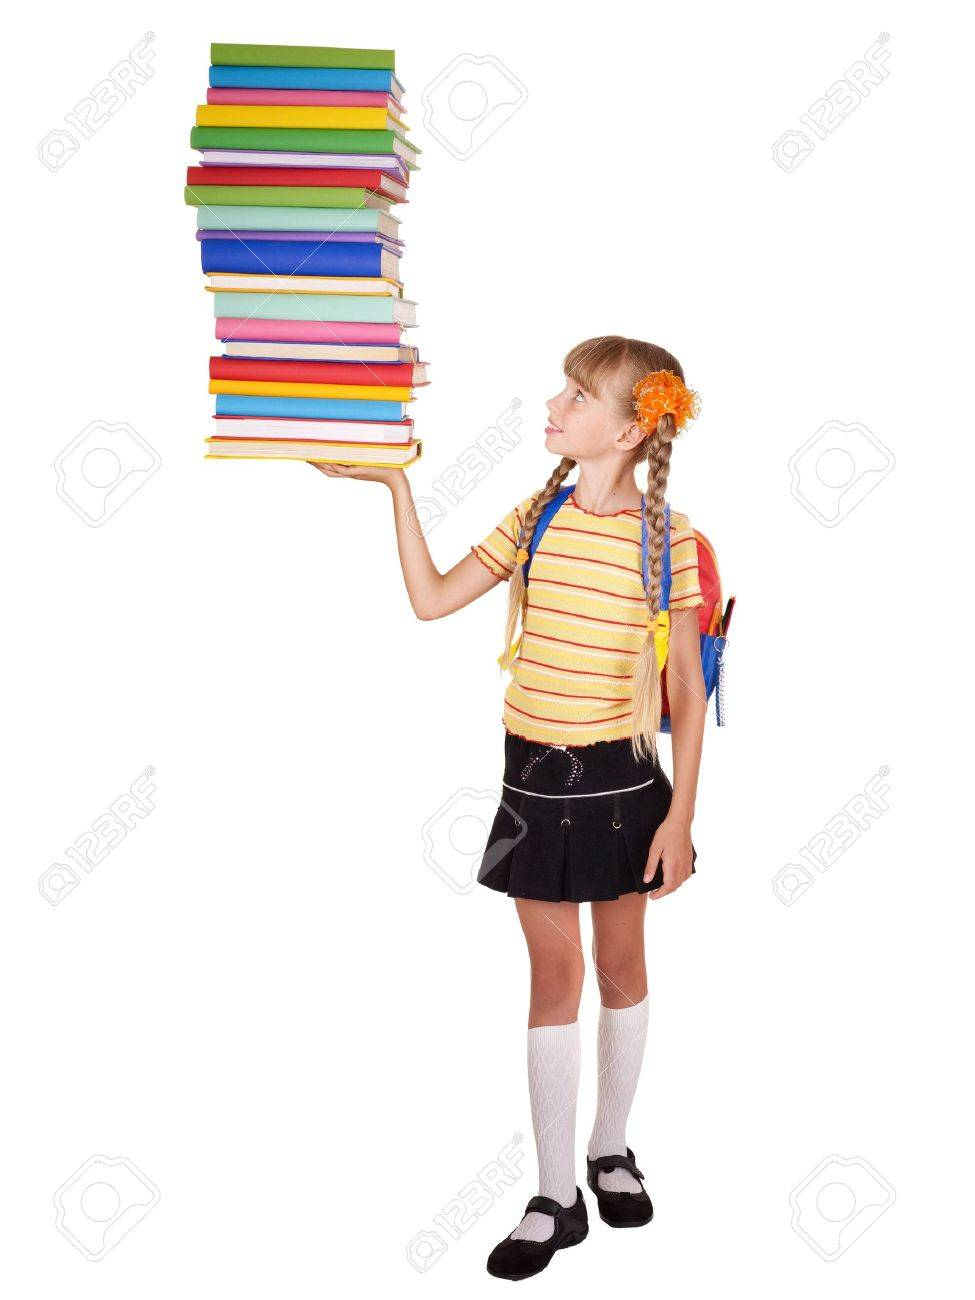 Schoolgirl with backpack holding pile of books. Isolated. Stock Photo - 7450517